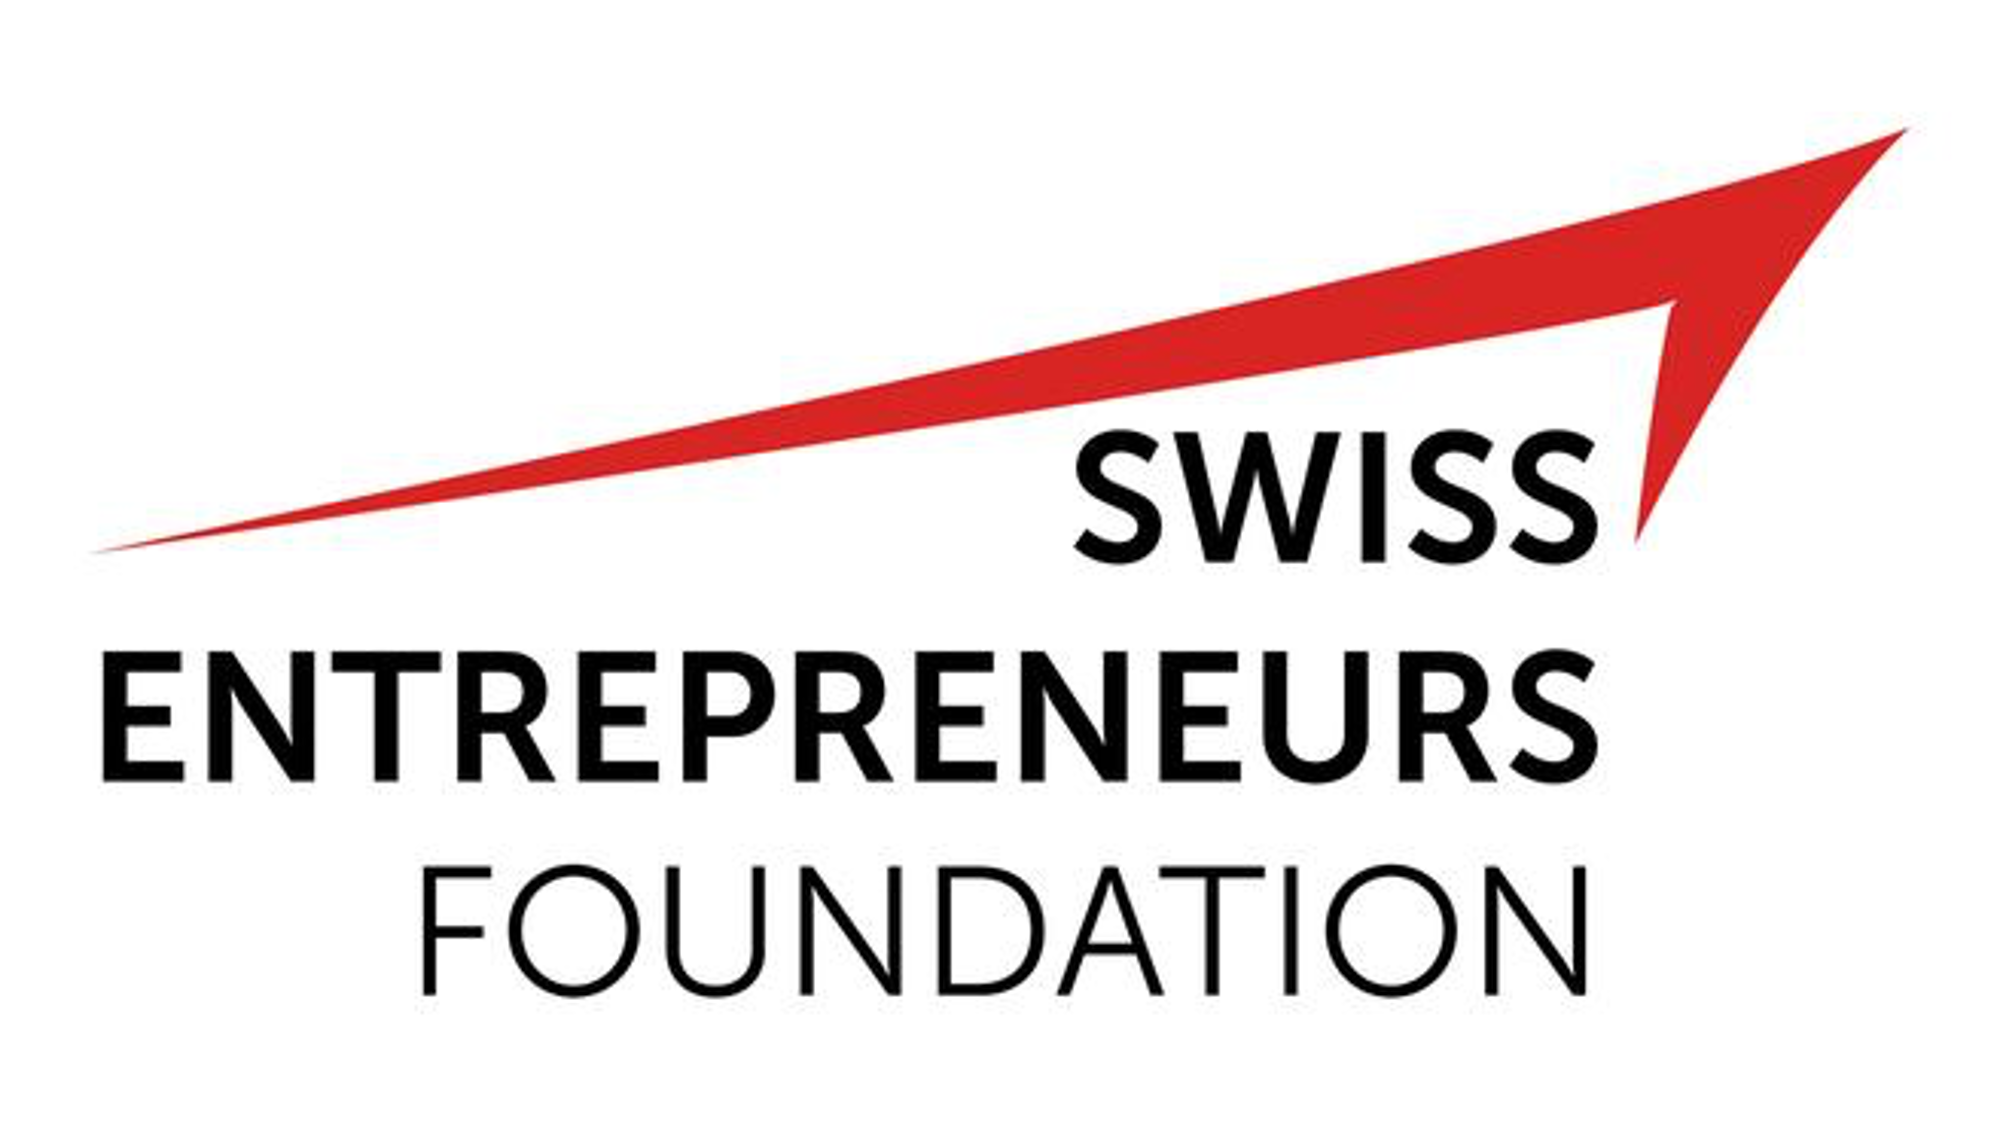 Swiss Entrepreneur Foundation